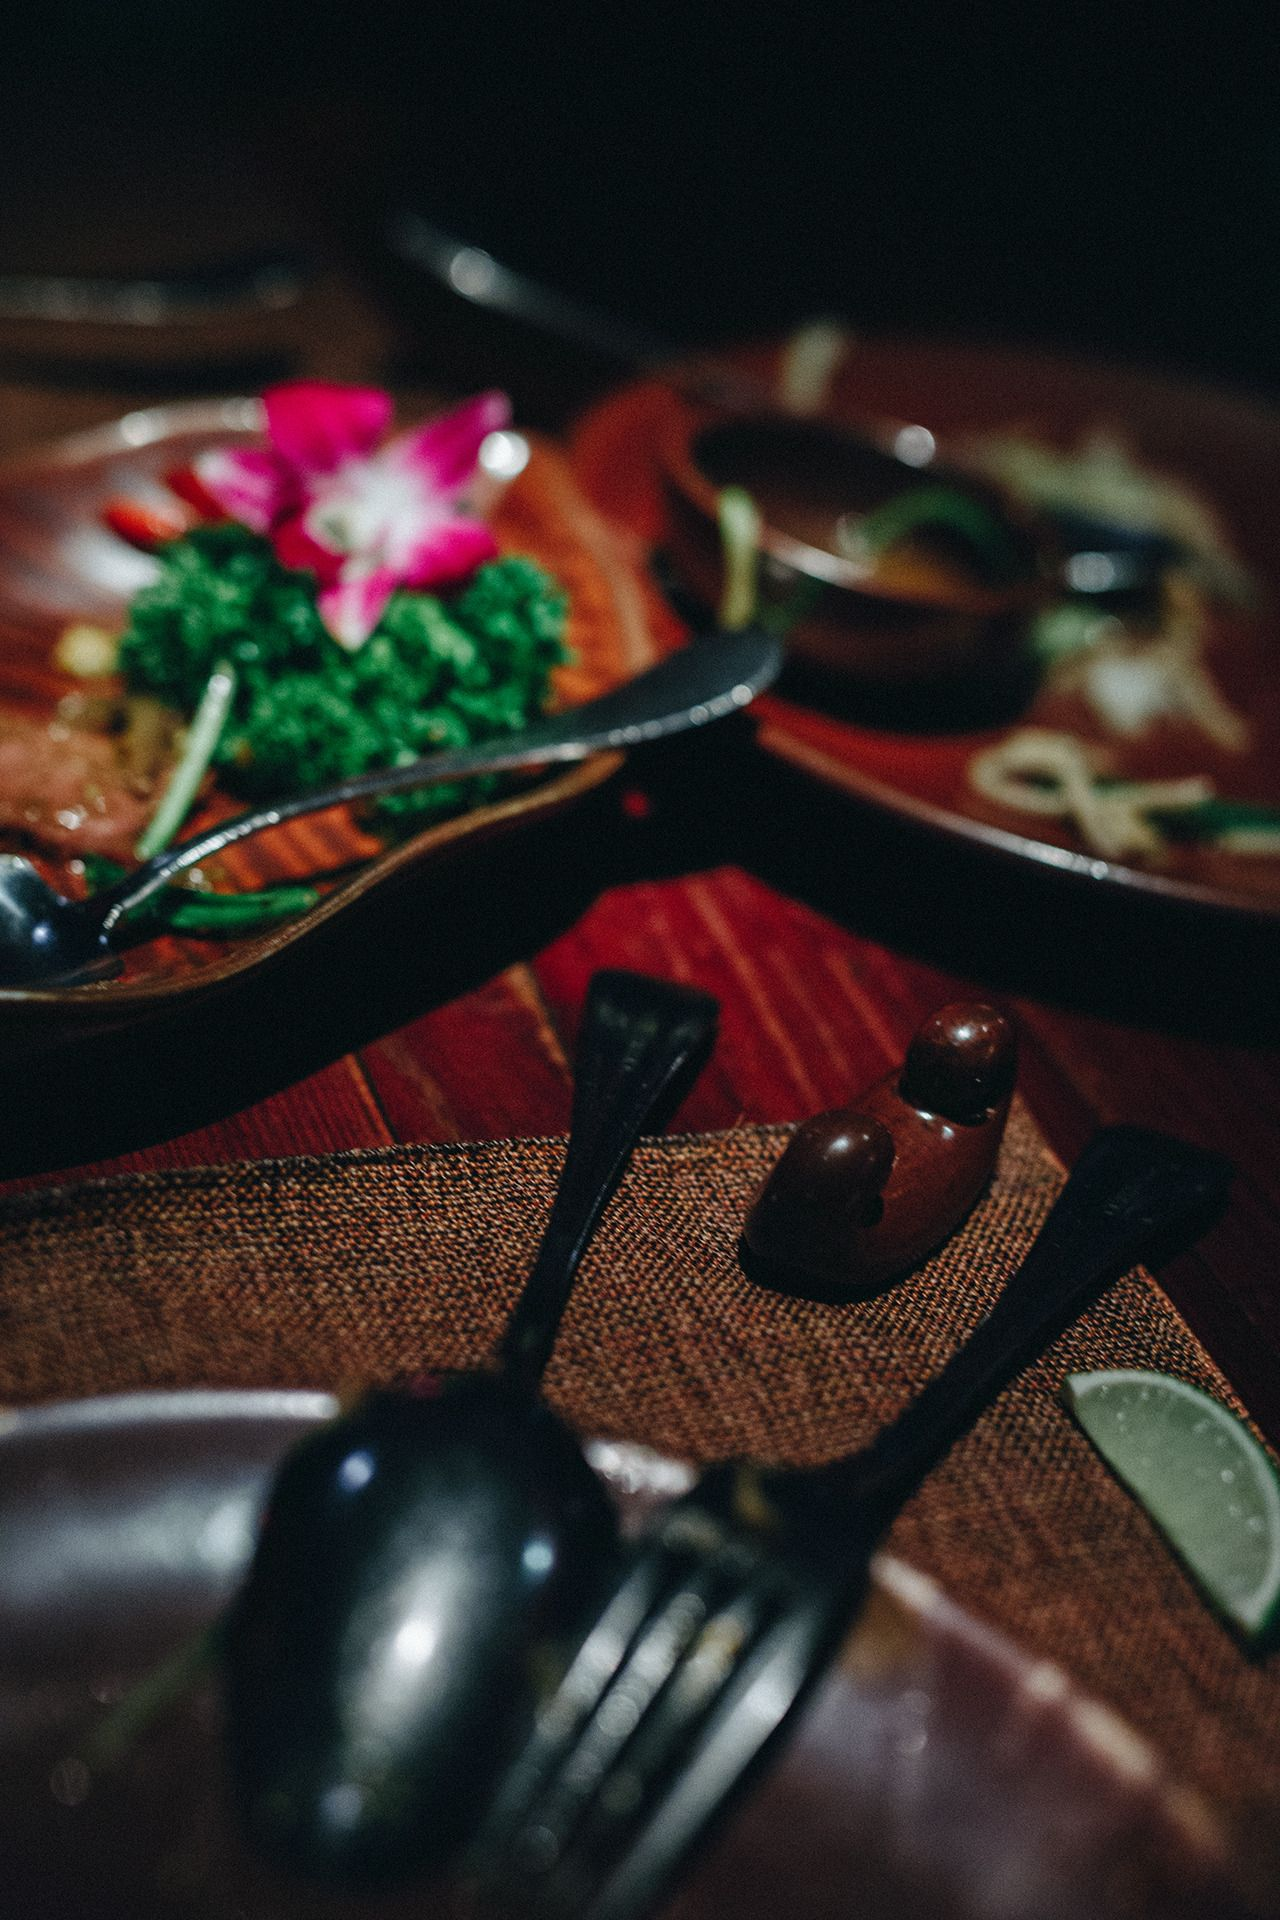 Eating out on the bund:lost heaven - #blog #china #expat #food #fotografie #in #on #photographers #schanghai #shanghai #tumblr